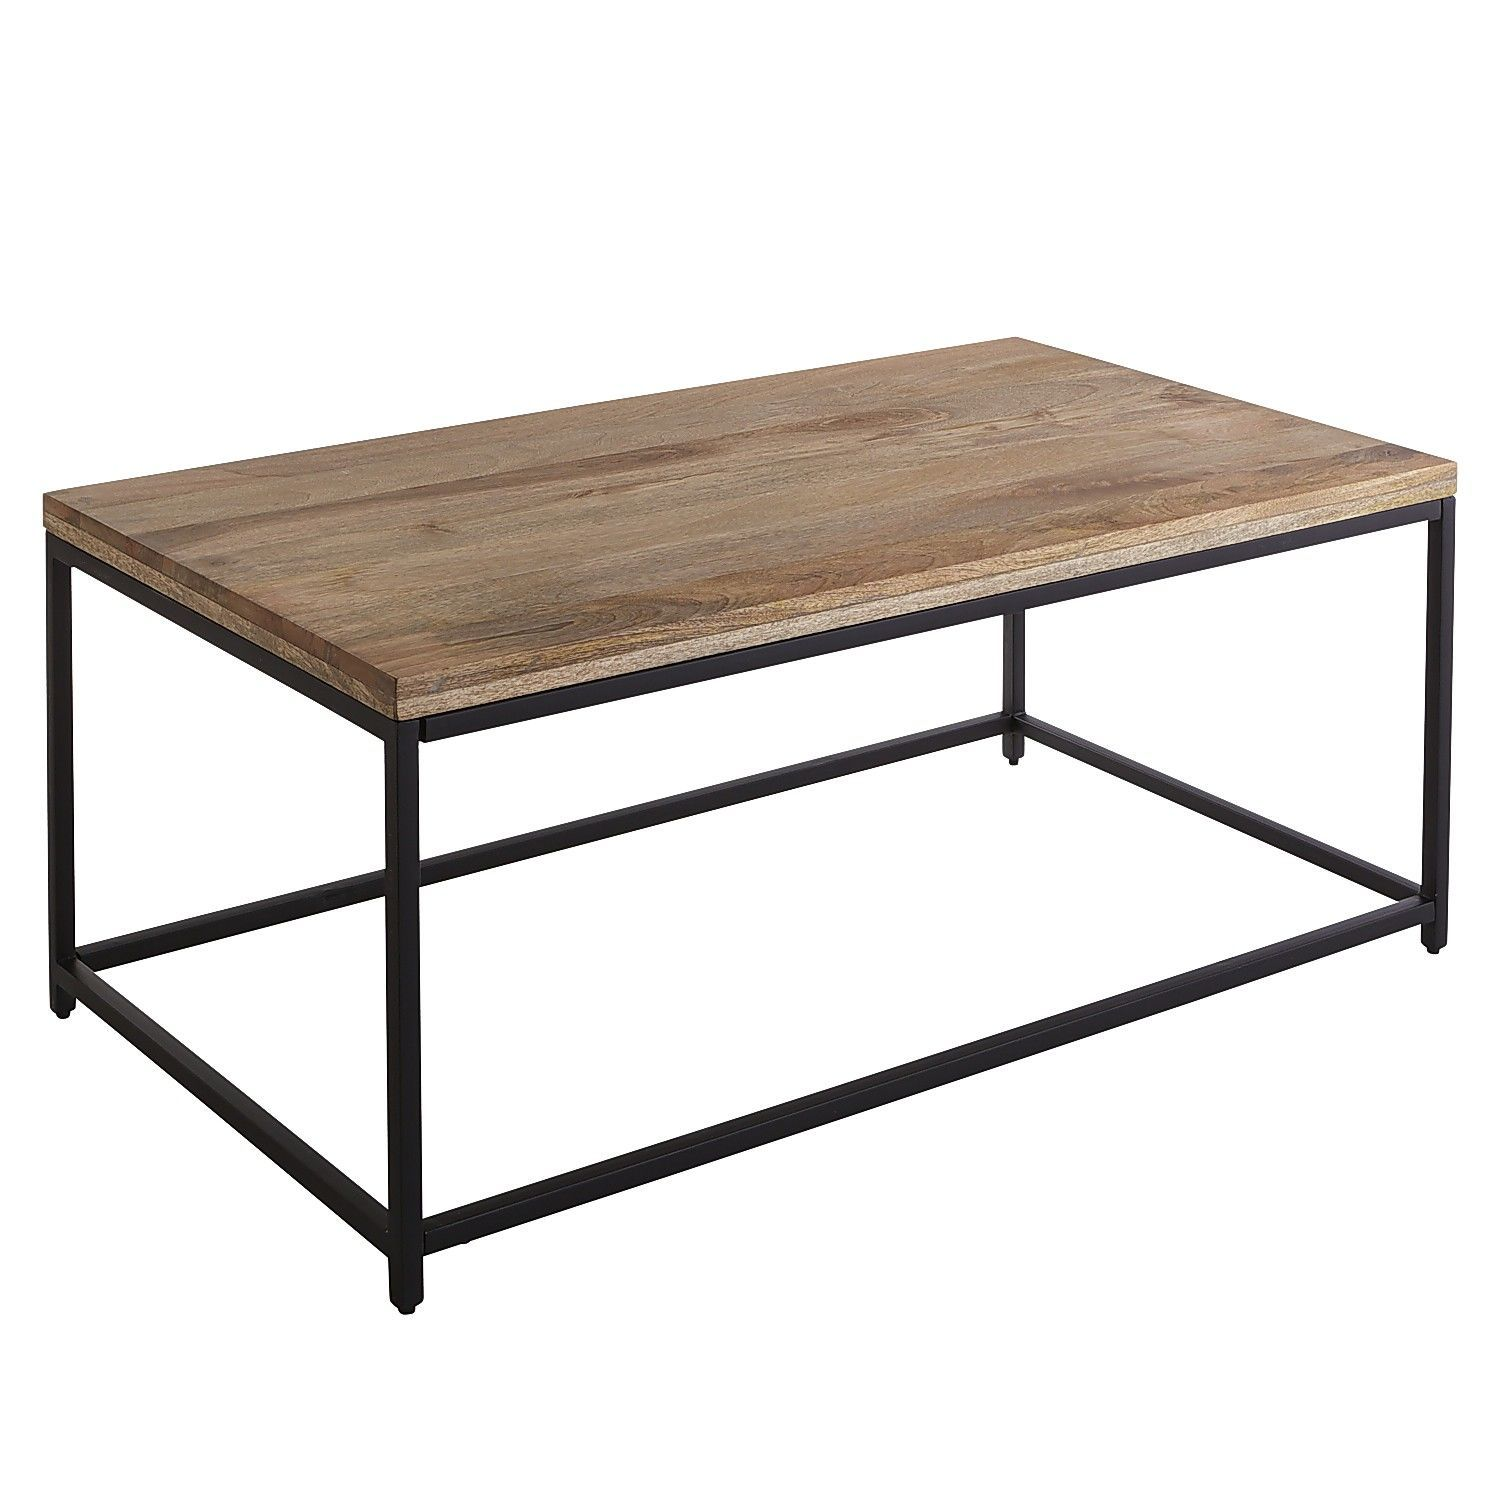 takat natural mango wood coffee table rustic industrial